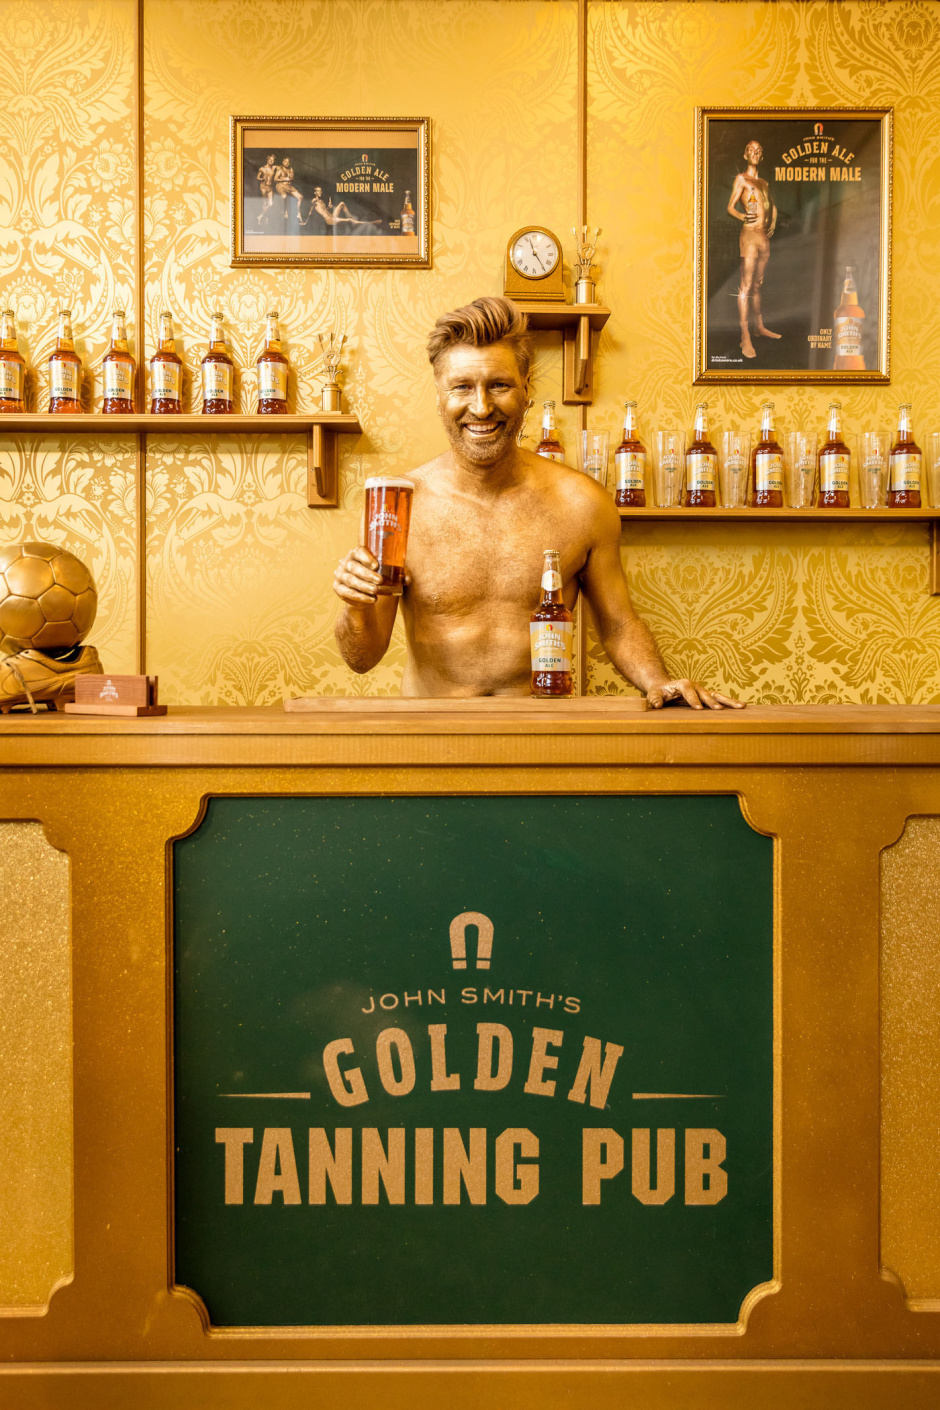 Golden Ale for the Modern Male: Former footballer Robbie Savage is pictured serving pints and sporting a dazzling golden spray tan at the launch of the John Smith's Golden Tanning Pub in London. The entirely gold pub-come-tanning salon has been created to mark the launch of the new John Smith's Golden Ale advertising campaign and opens its doors to the public on Wednesday 27th April.